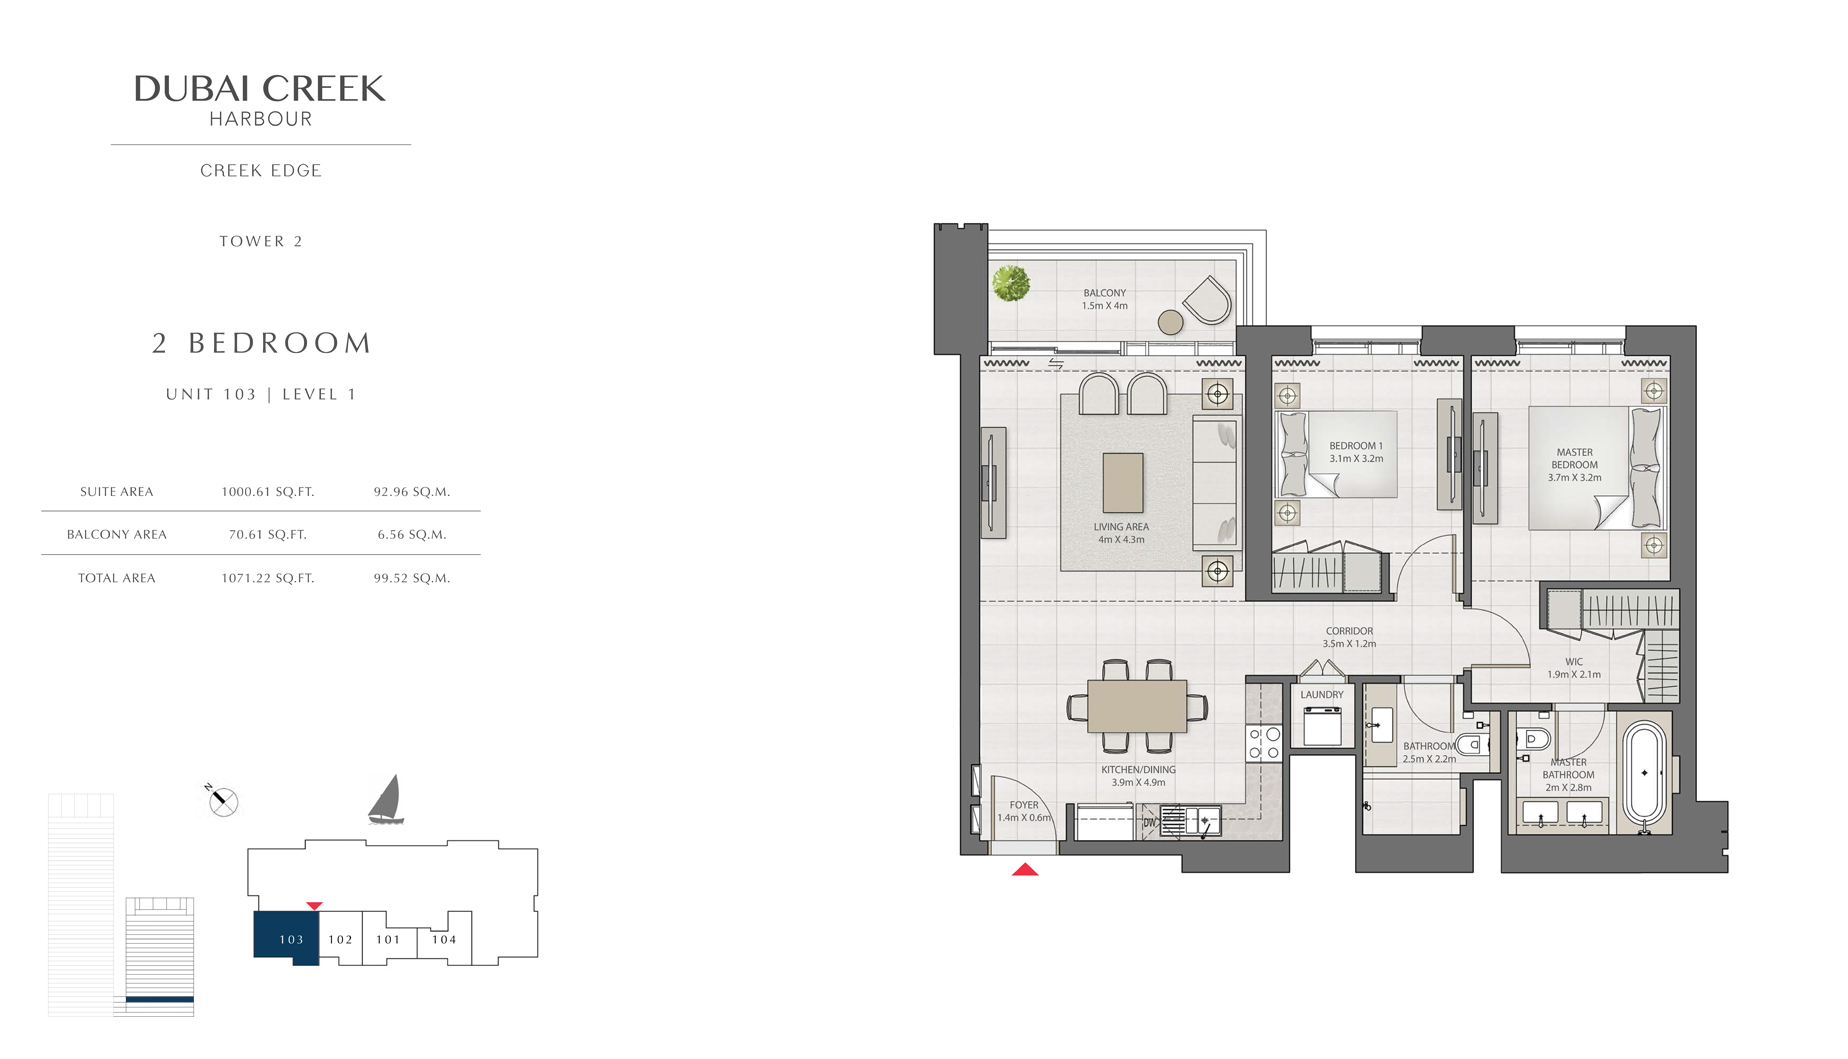 2 Bedroom Tower 2 Unit 103 Level 1 Size 1071 sq.ft